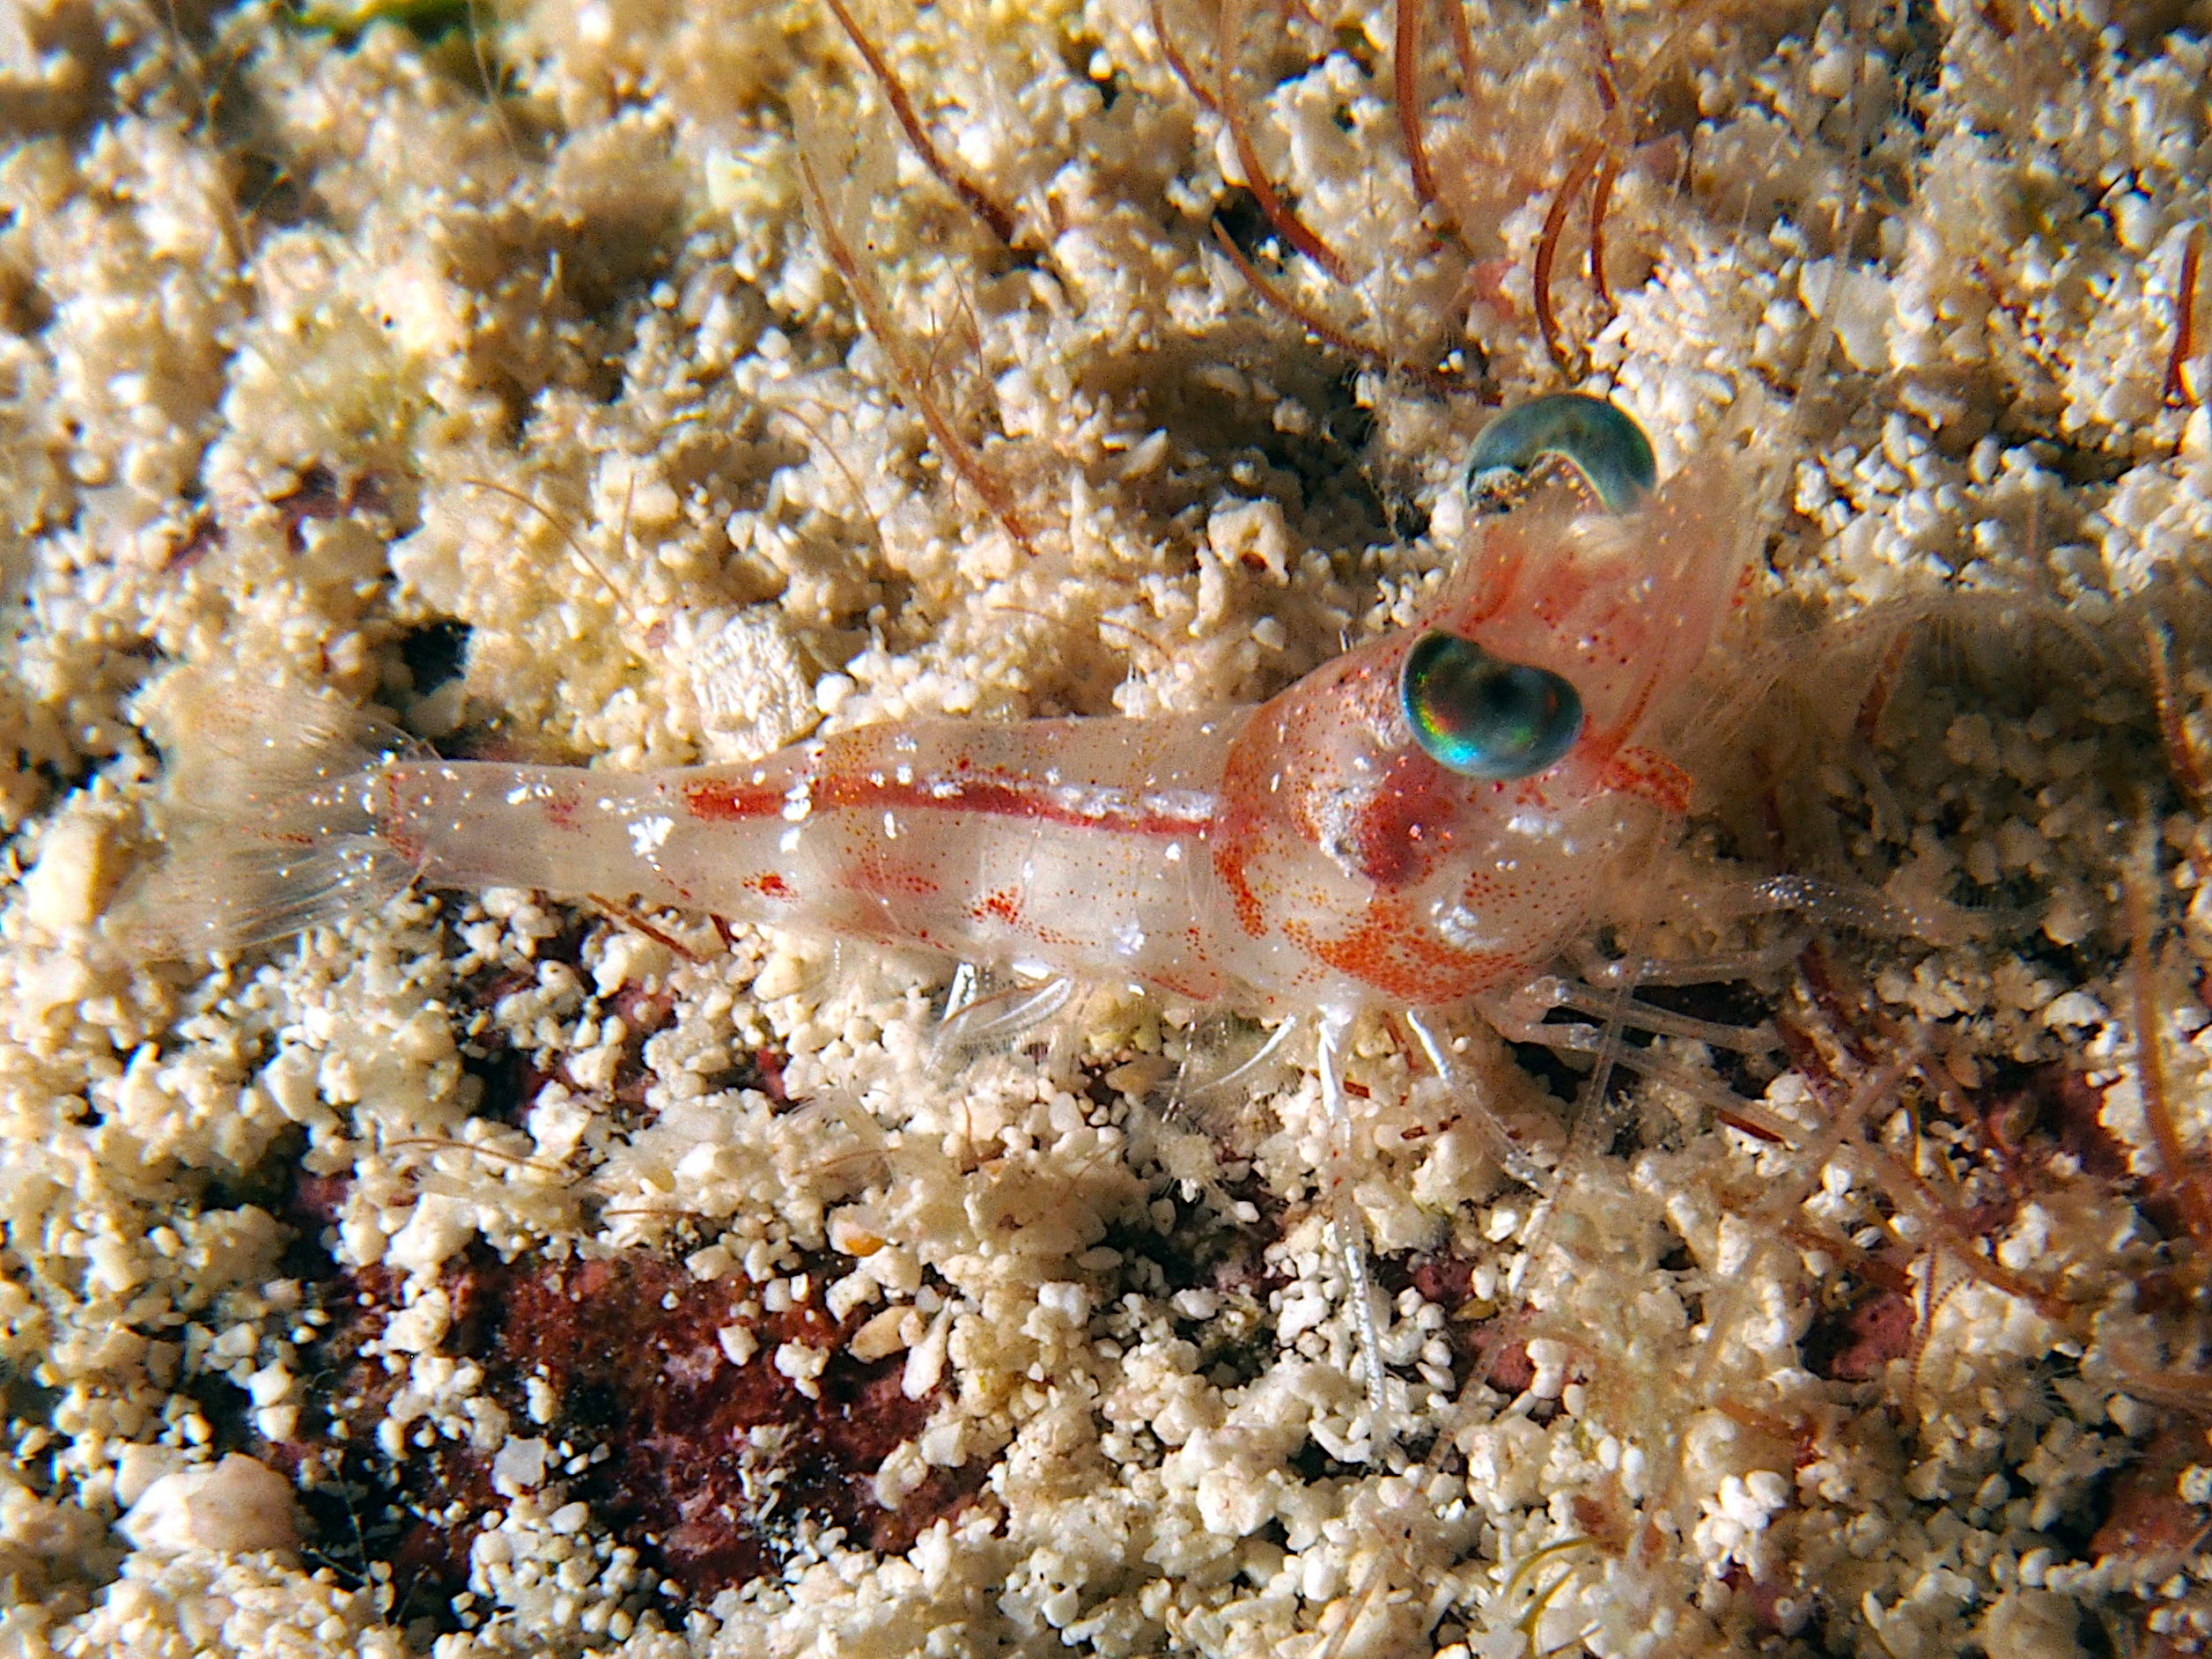 Carribean Velvet Shrimp - Metapenaeopsis goodei